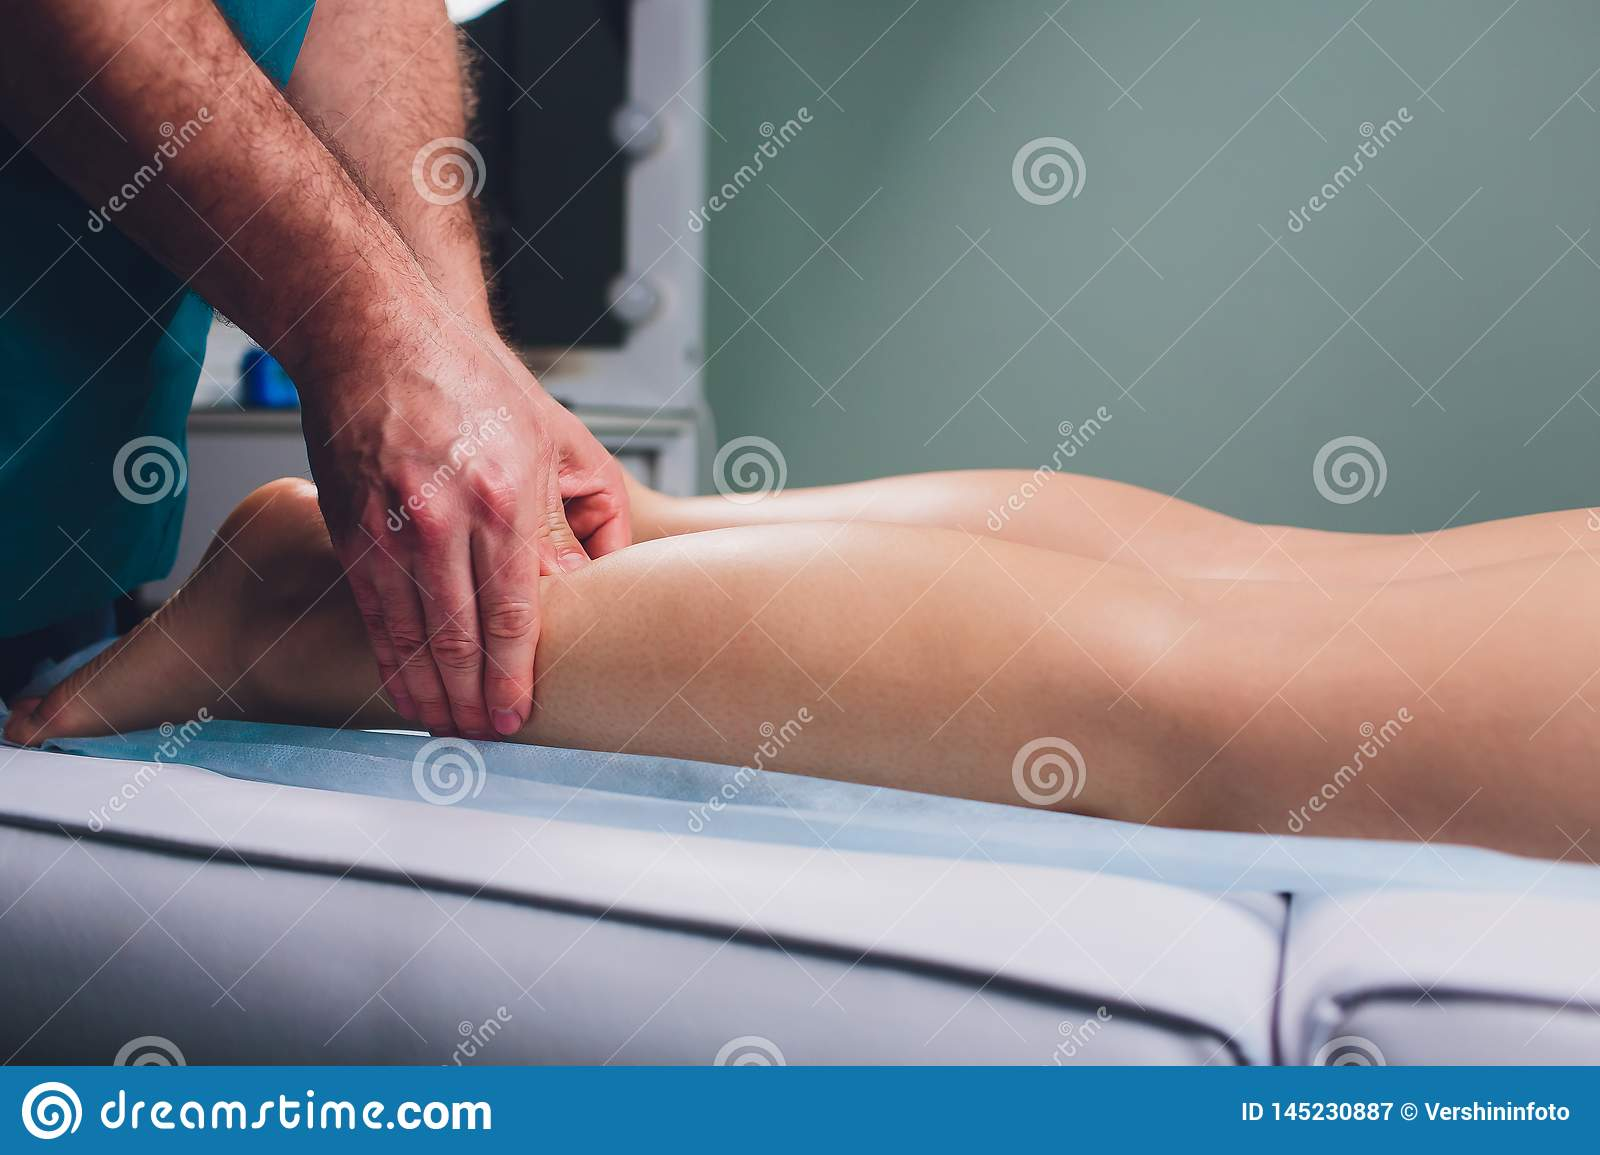 Anti-cellulite massage on the legs of young women.